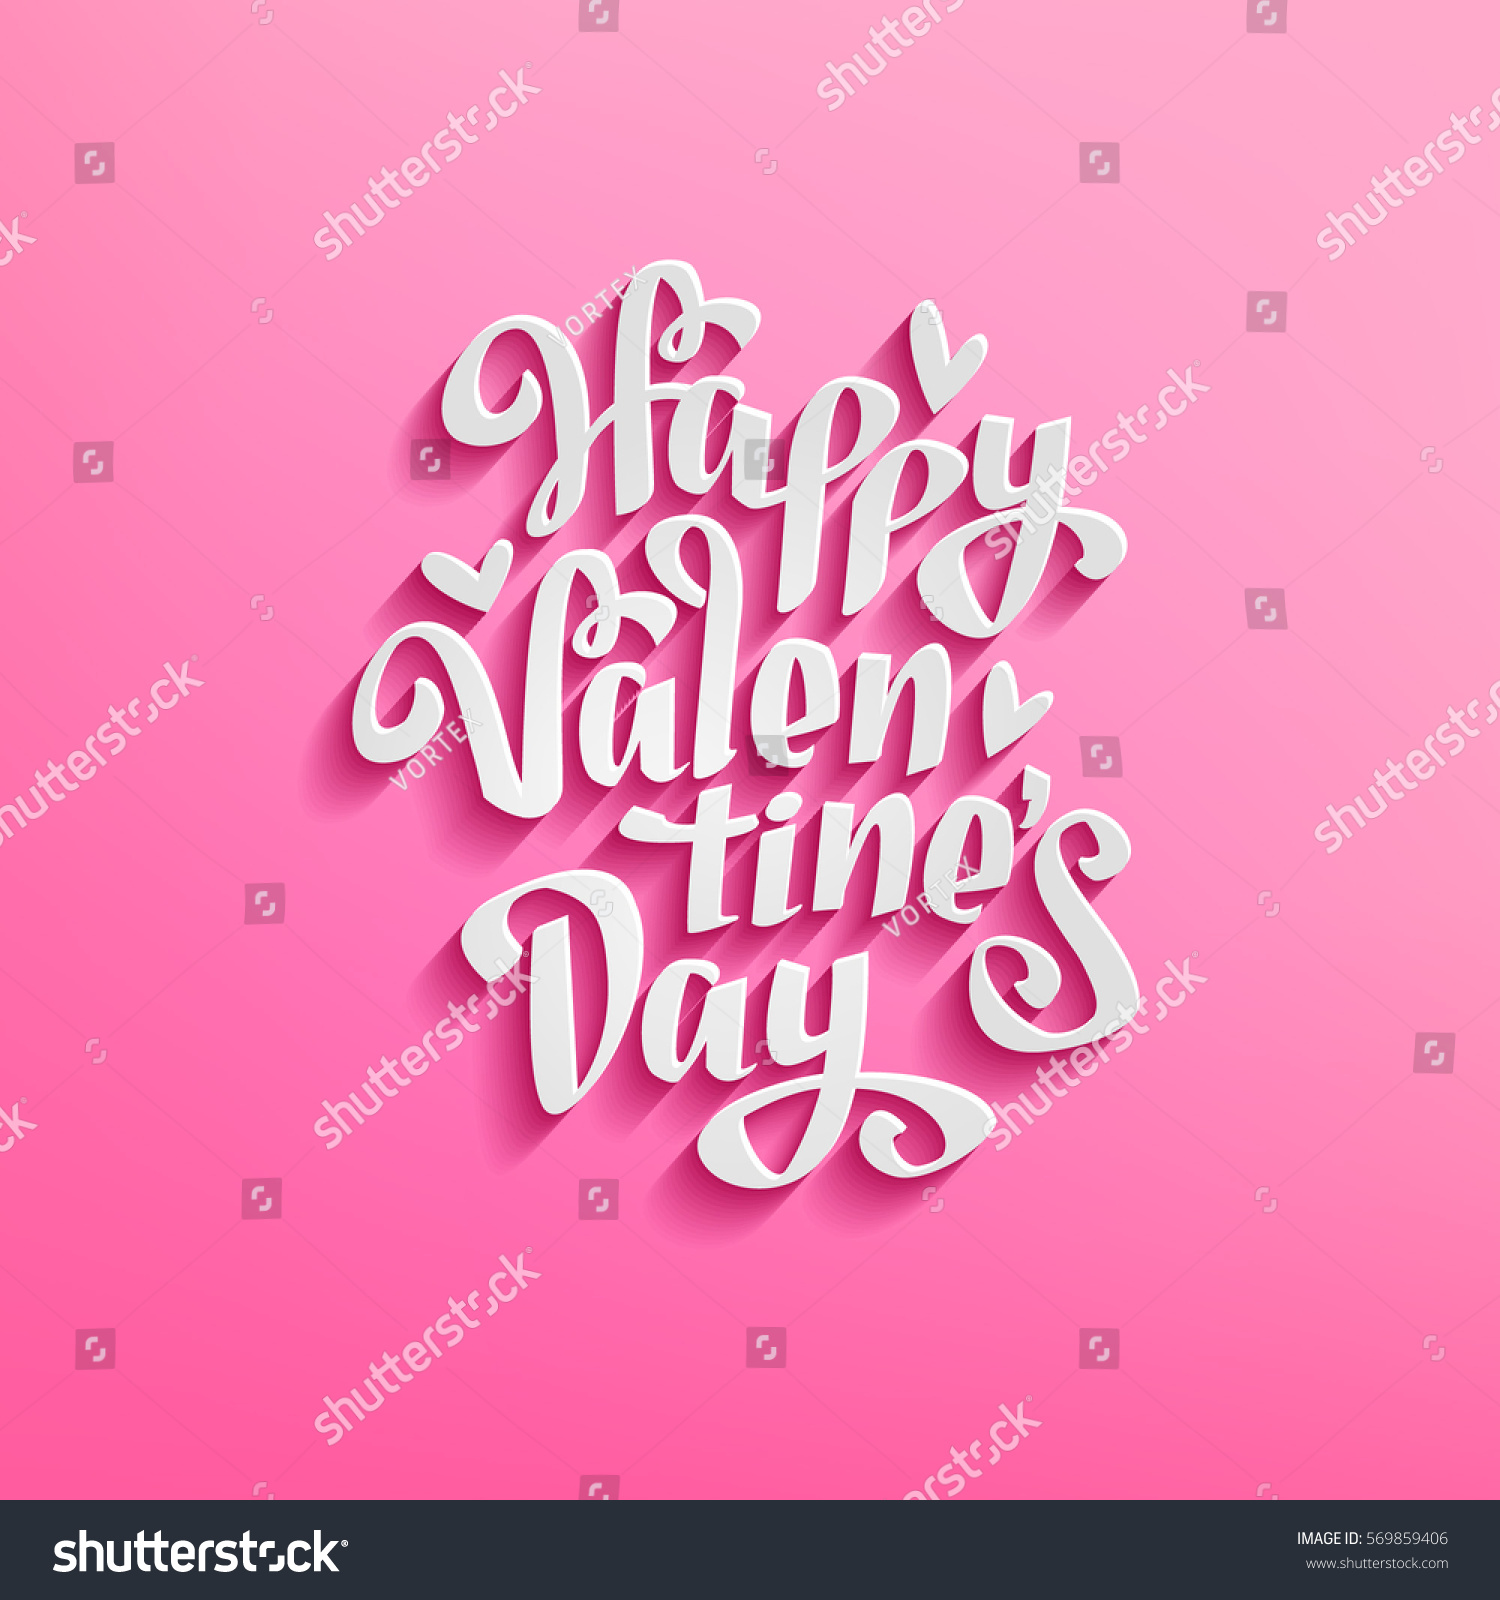 Happy valentines day minimalistic design on stock vector 569859406 happy valentines day minimalistic design on pink background template for greeting card invitation and kristyandbryce Choice Image